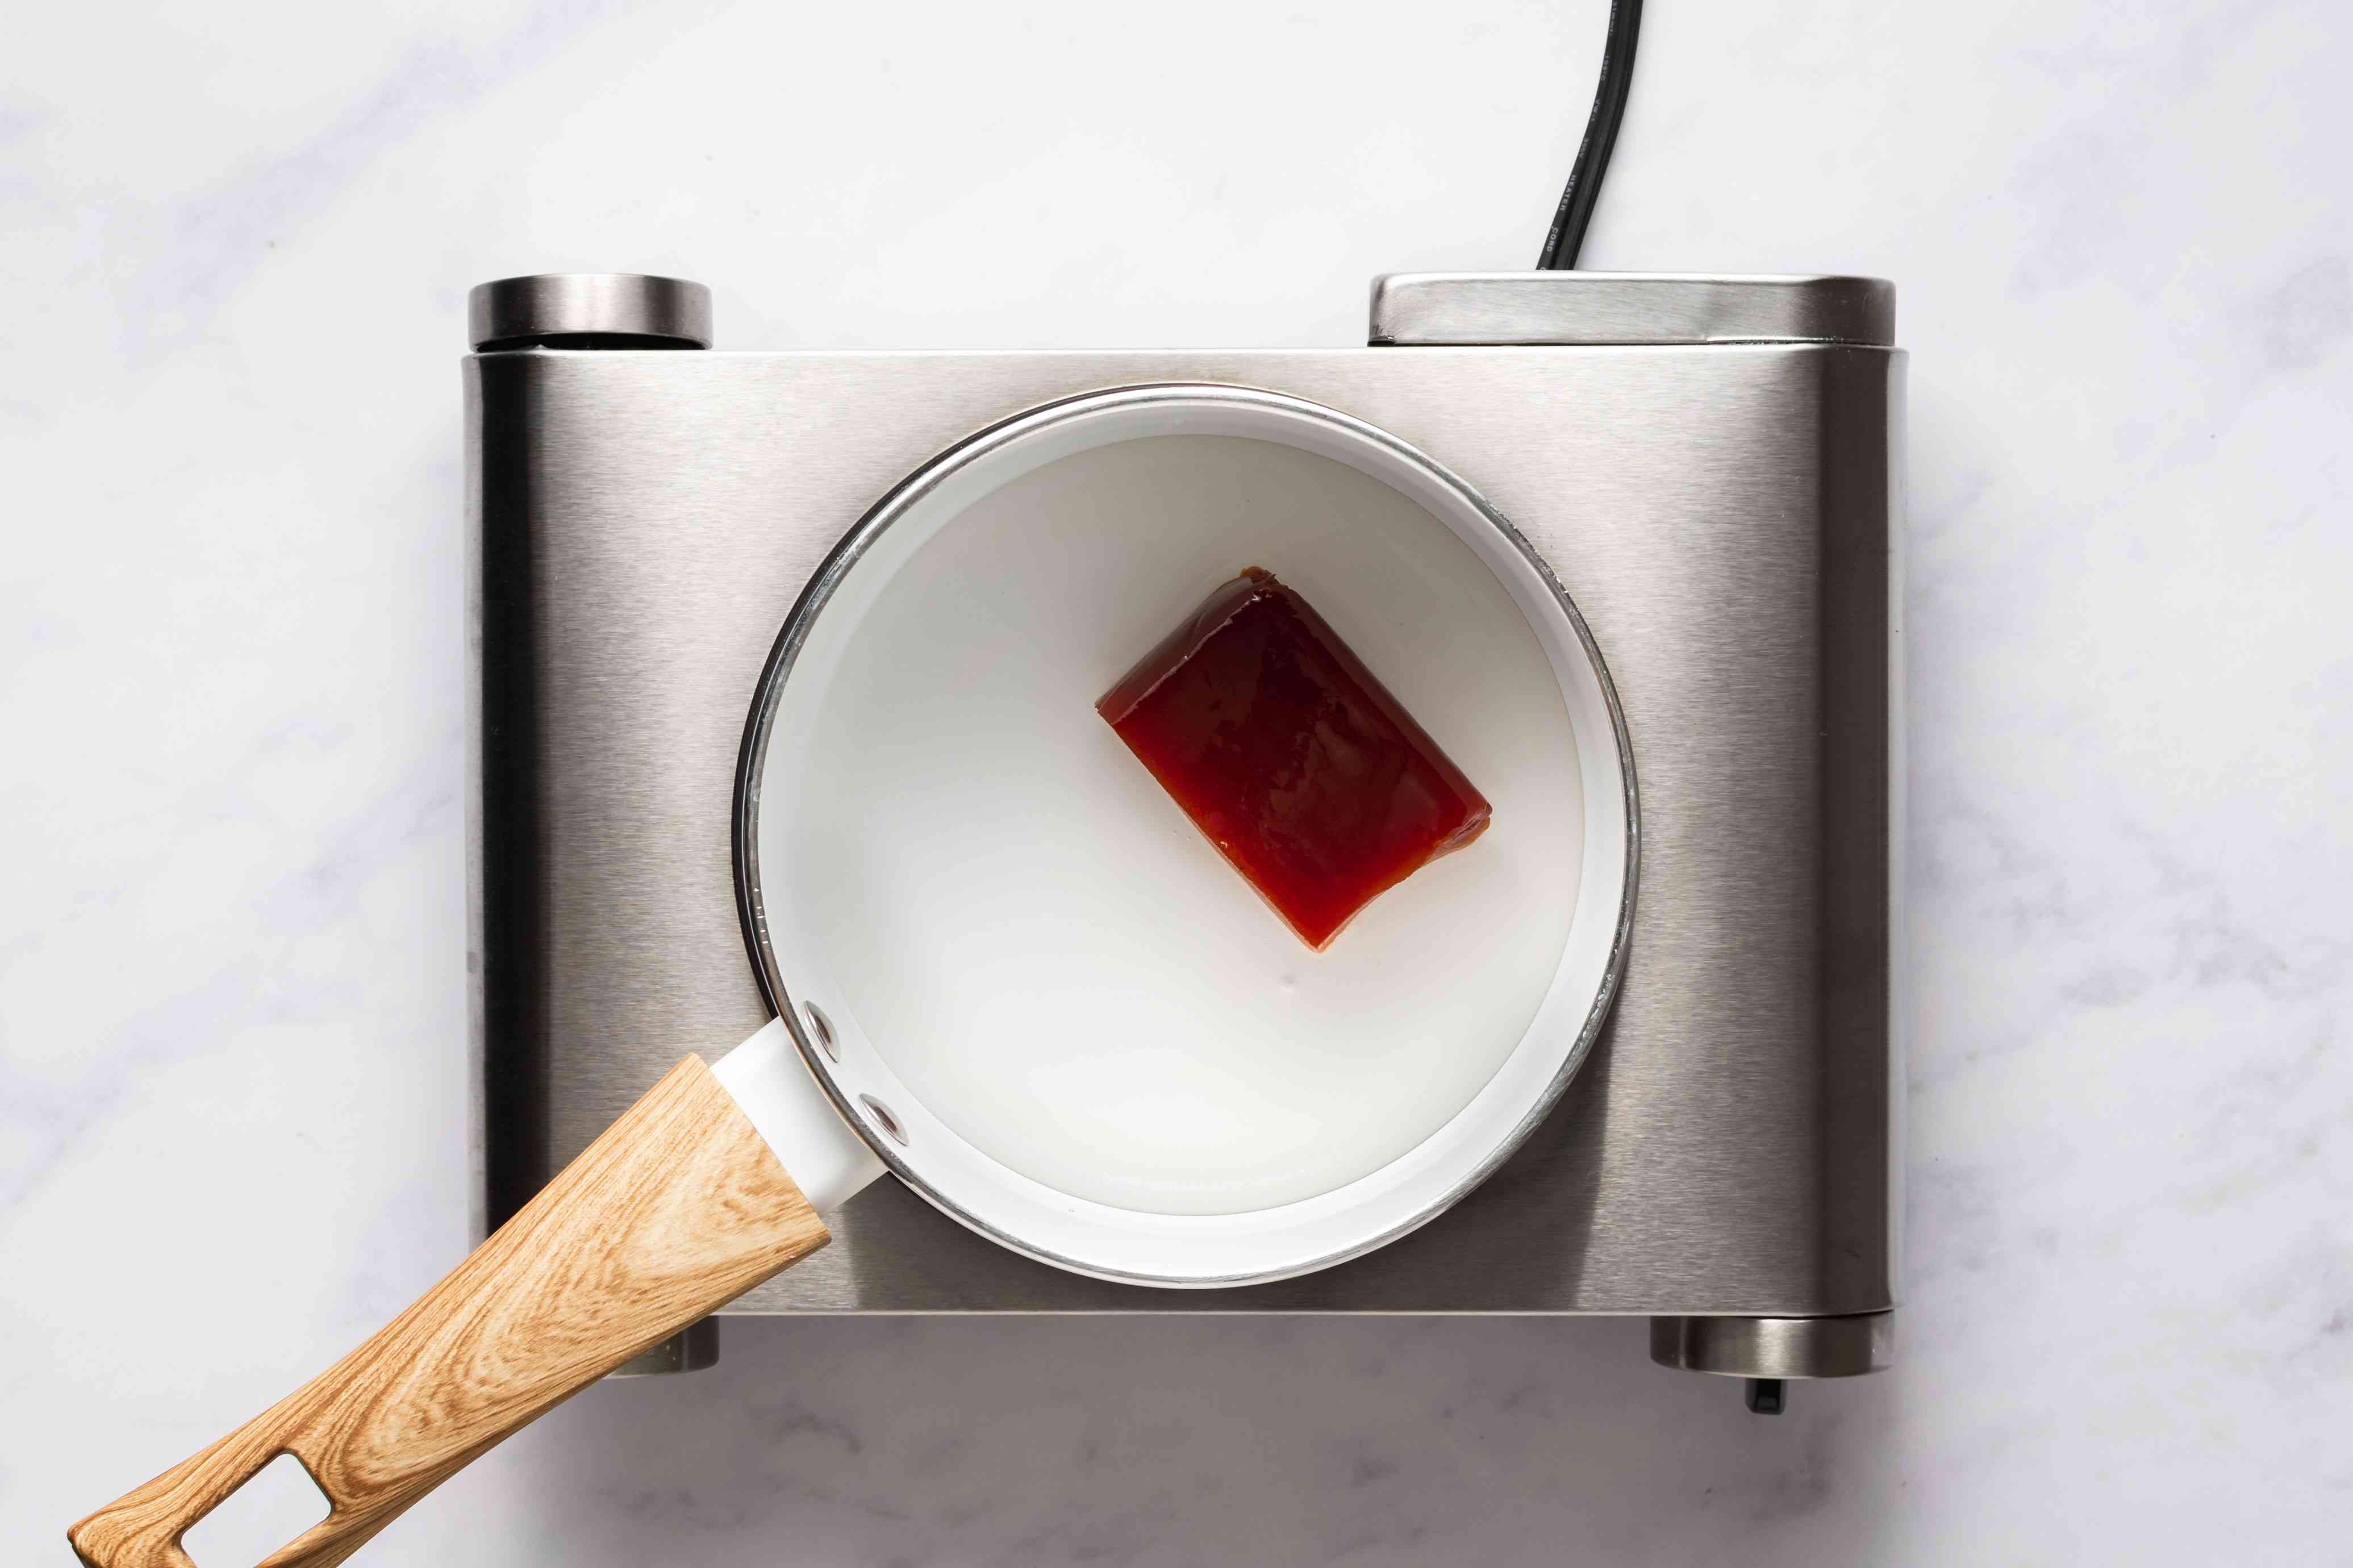 Combine the guava paste, vinegar and water in a saucepan